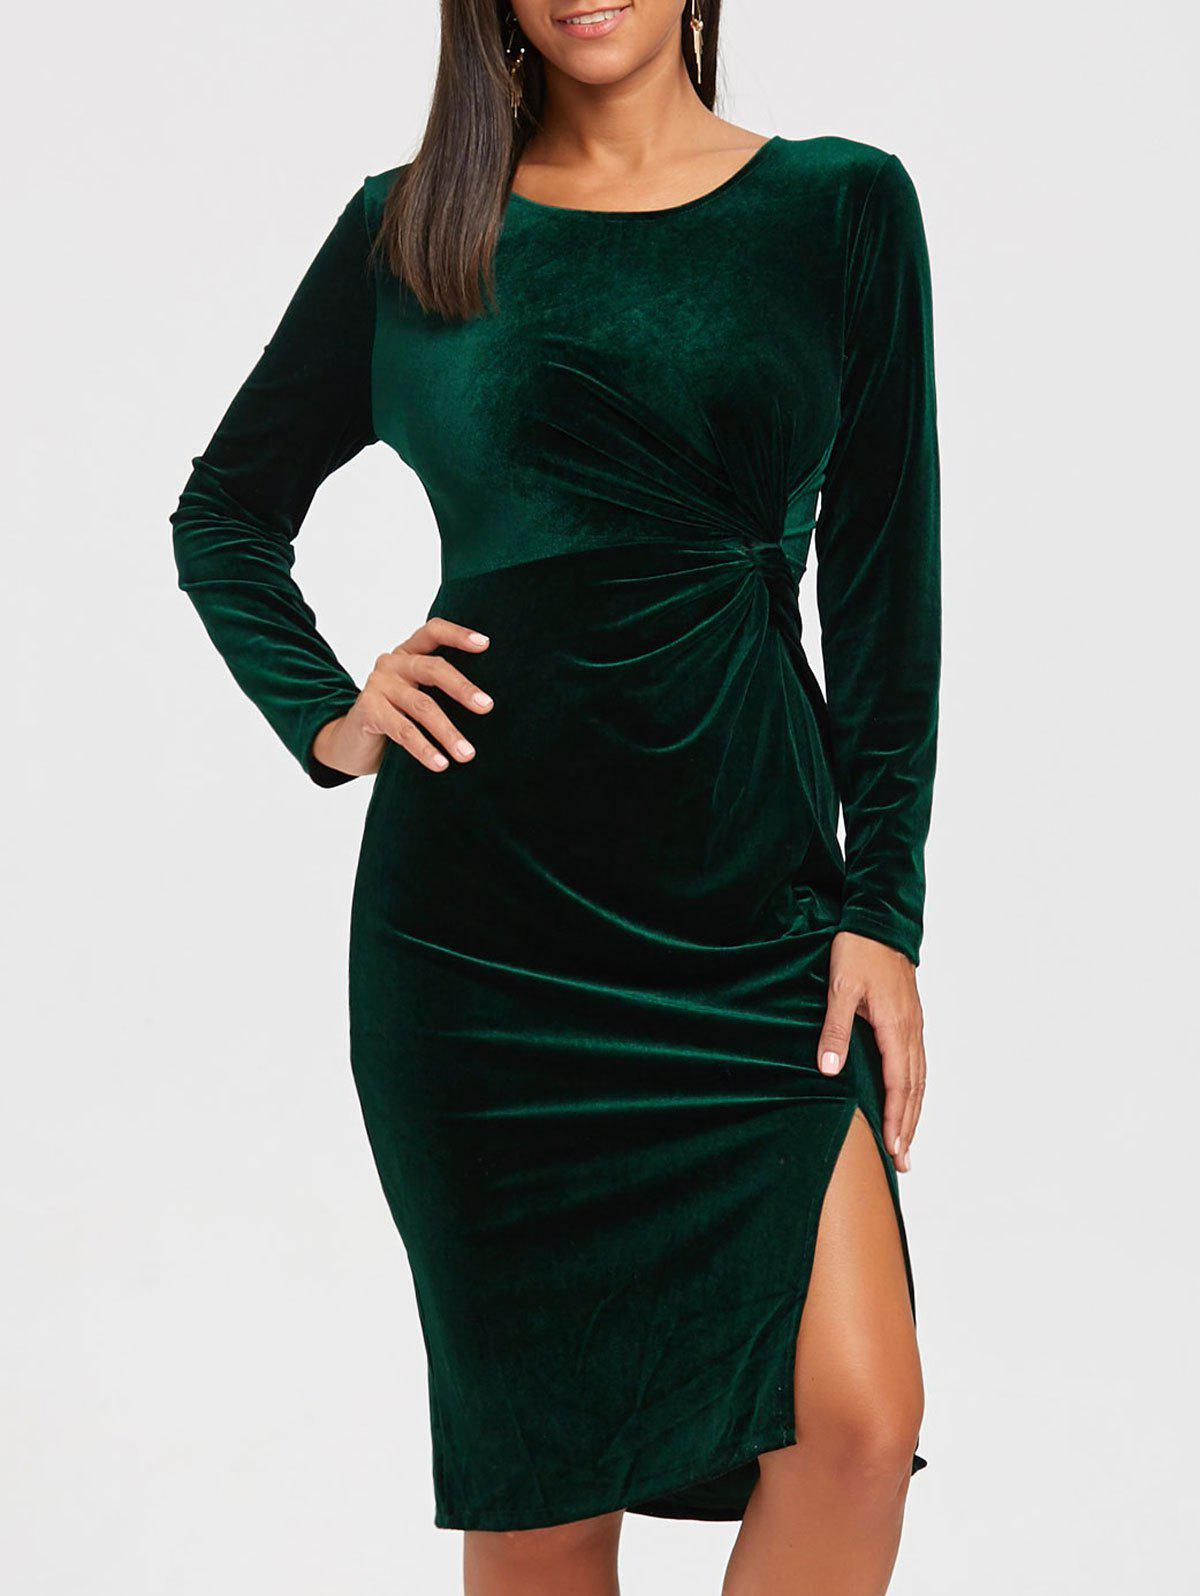 Front Knot High Slit Velvet Midi Dress maxi front slit crushed velvet tank dress